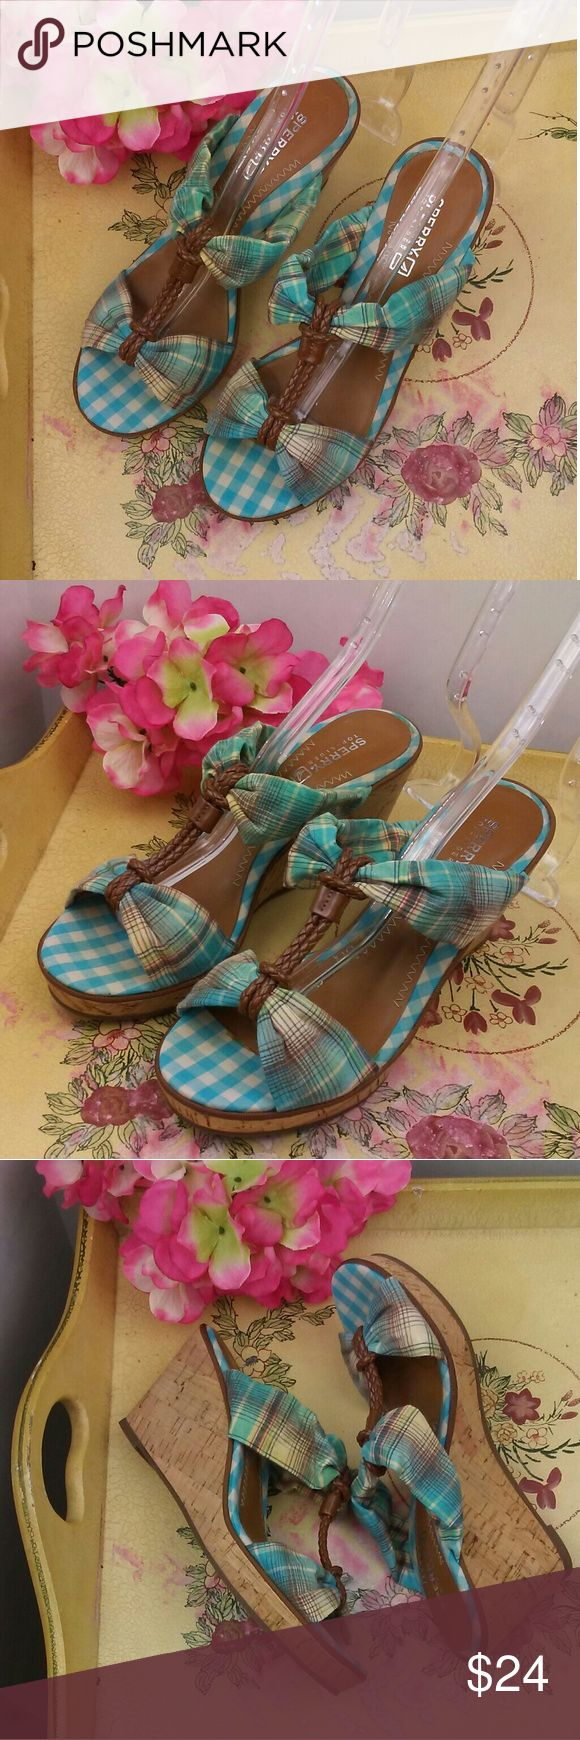 Sperry Top-Sider Shoreham Womens Turquoise Fabric Preowned in good condition Sperry Top-Sider Shoreham Womens Turquoise Fabric Open Toe Wedge Sandals sz 6.5 Sperry Top-Sider Shoes Wedges